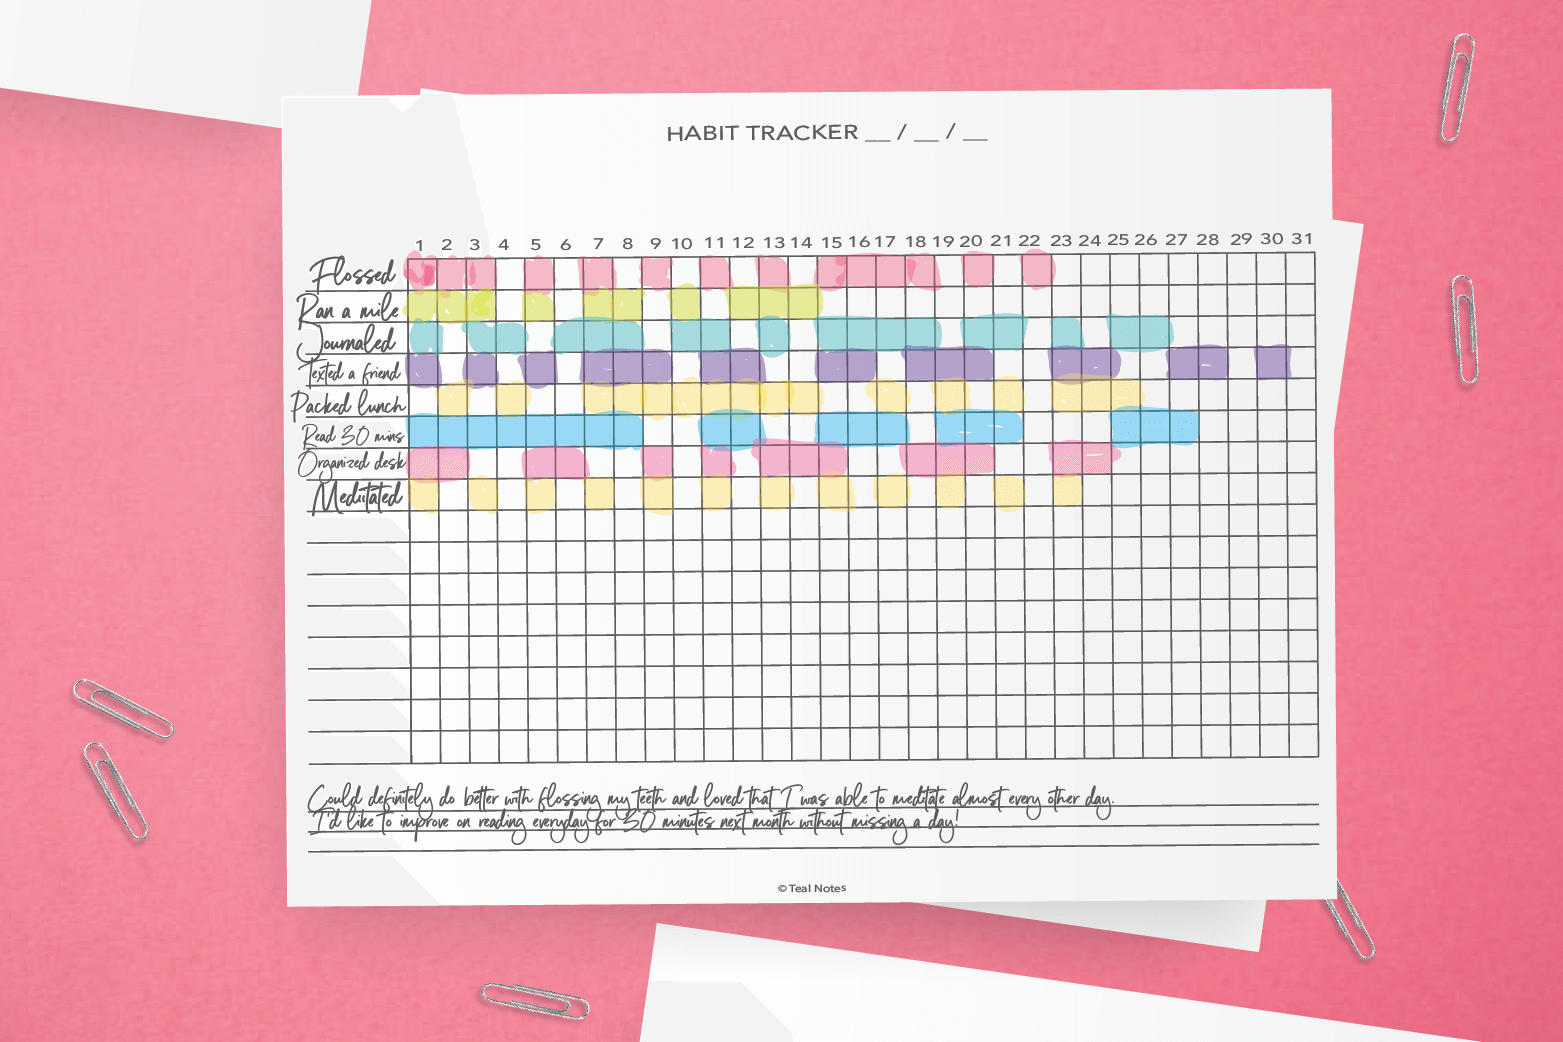 photo relating to Bullet Journal Habit Tracker Printable named Cost-free Printable Practice Tracker PDF: The Greatest Pattern Tracker